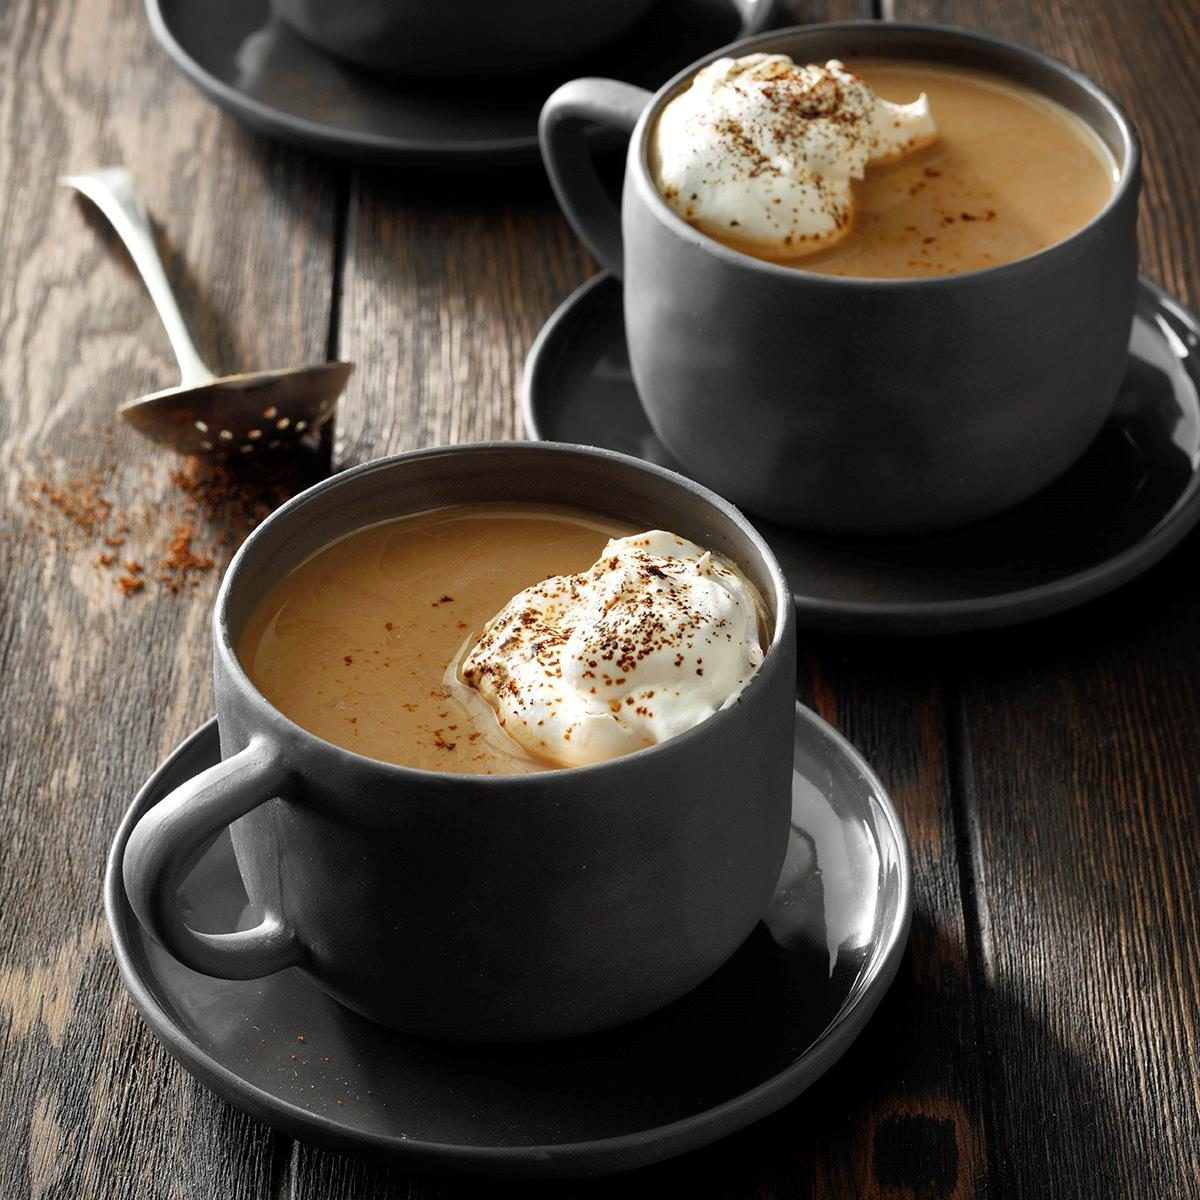 25 Hot Drinks That Will Satisfy Your Chocolate Craving